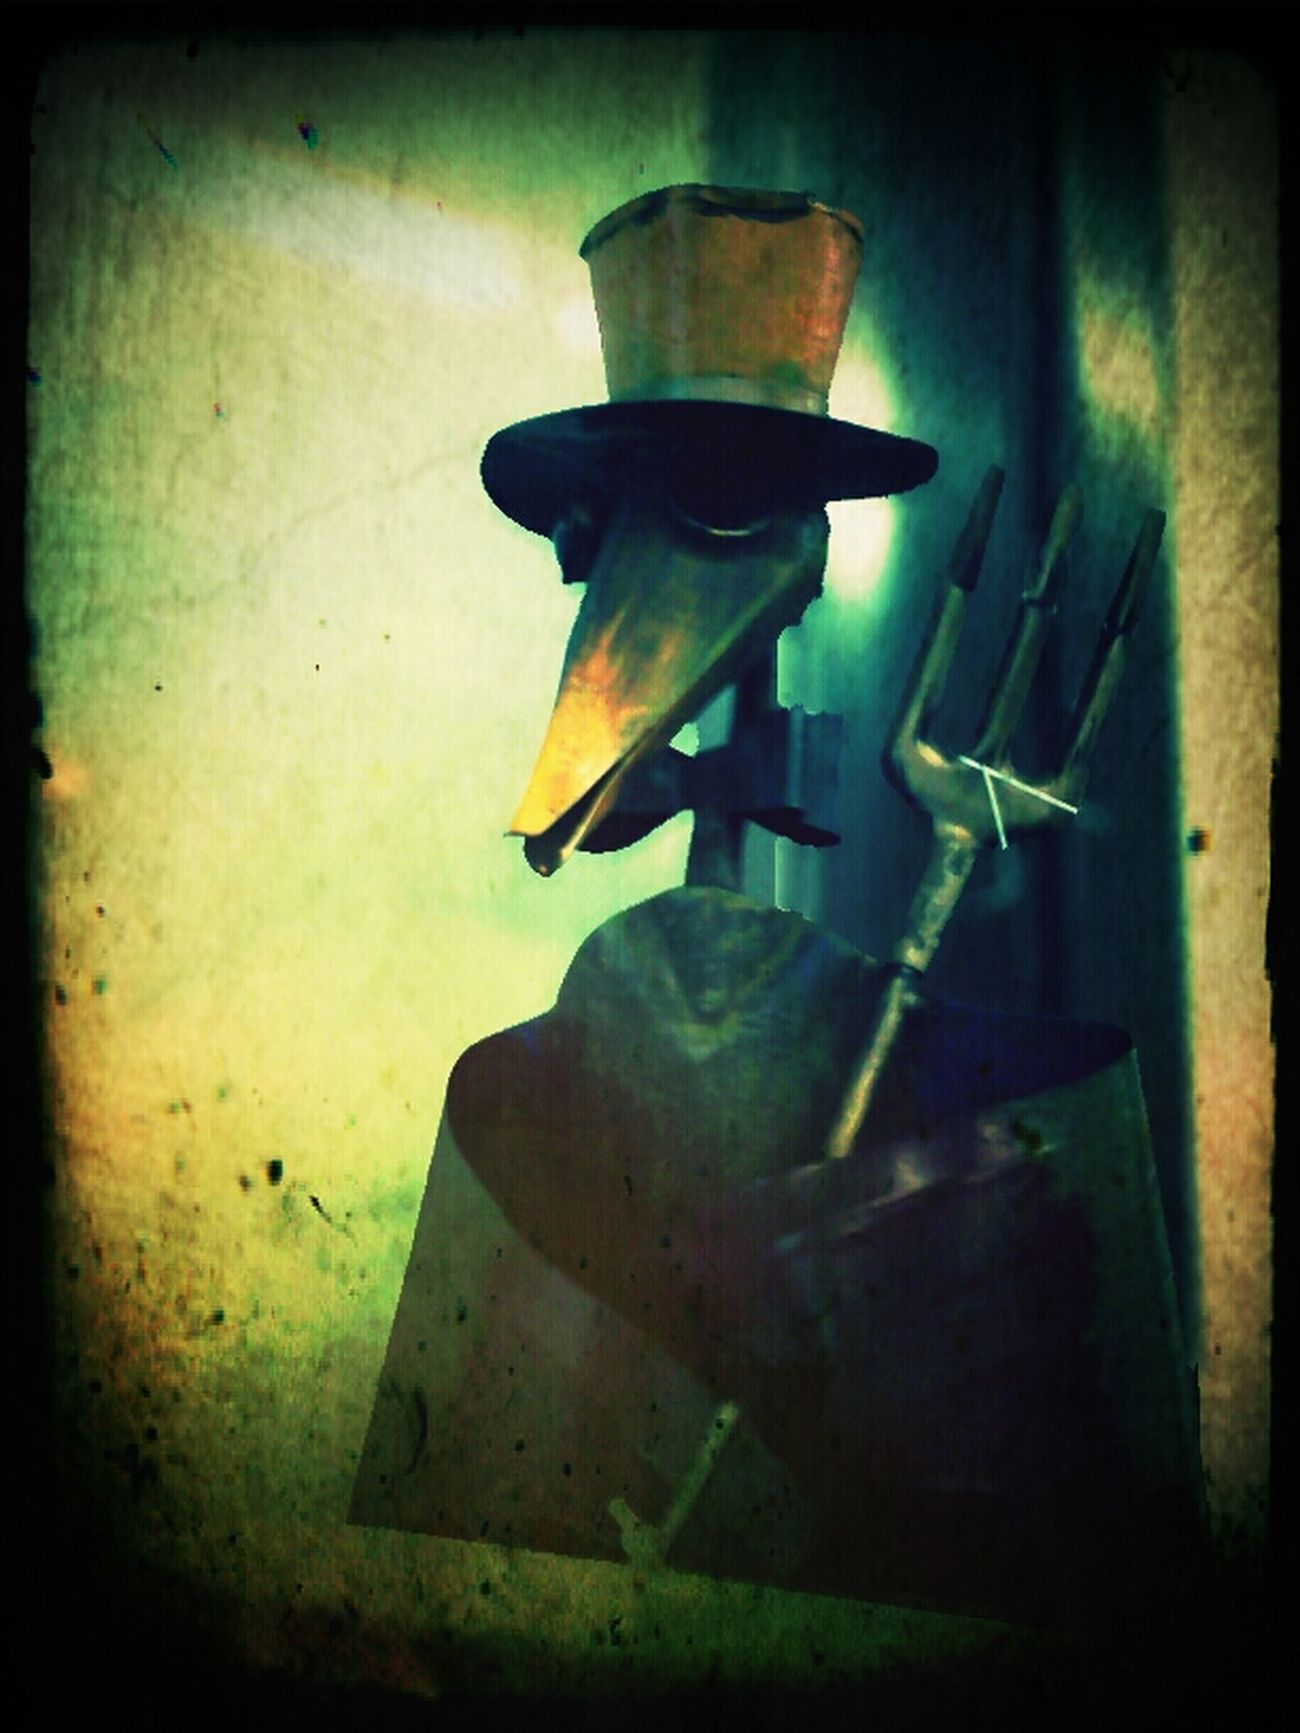 ·theKEEPER· Watching Toys Vintage Fotodroiding Birds Droidography Android People Watching